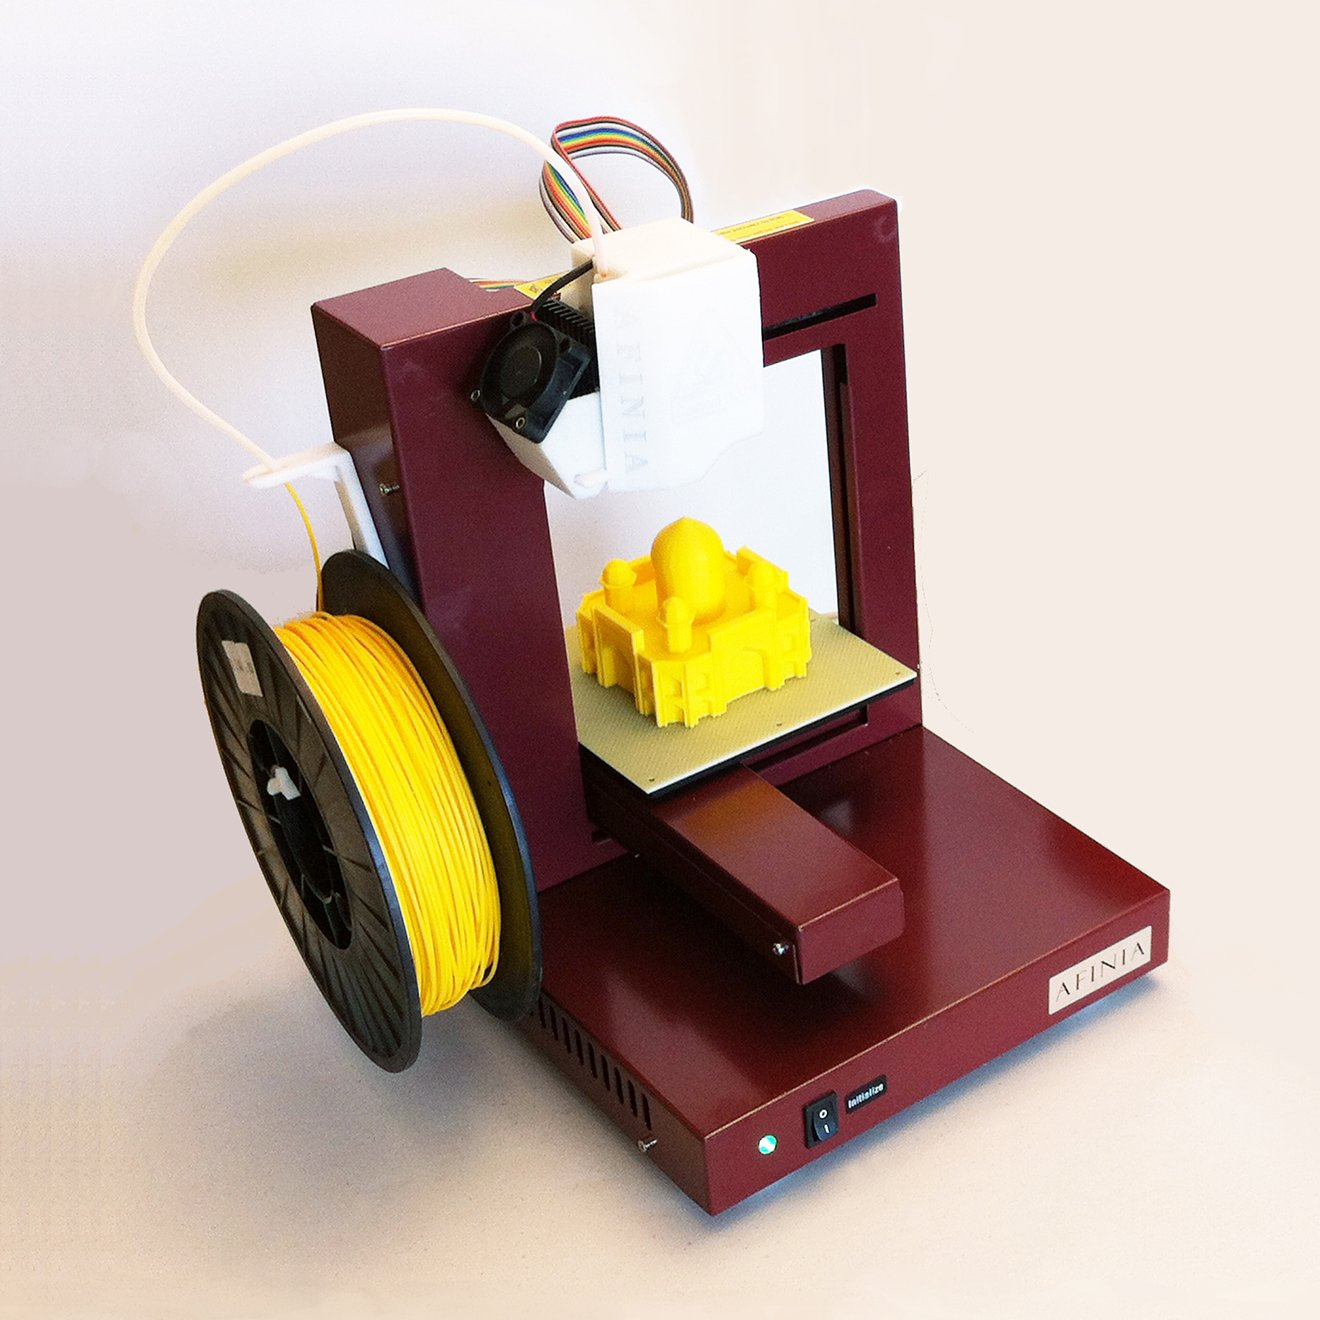 How Much Does A 3D Printer Cost? Still Expensive, But